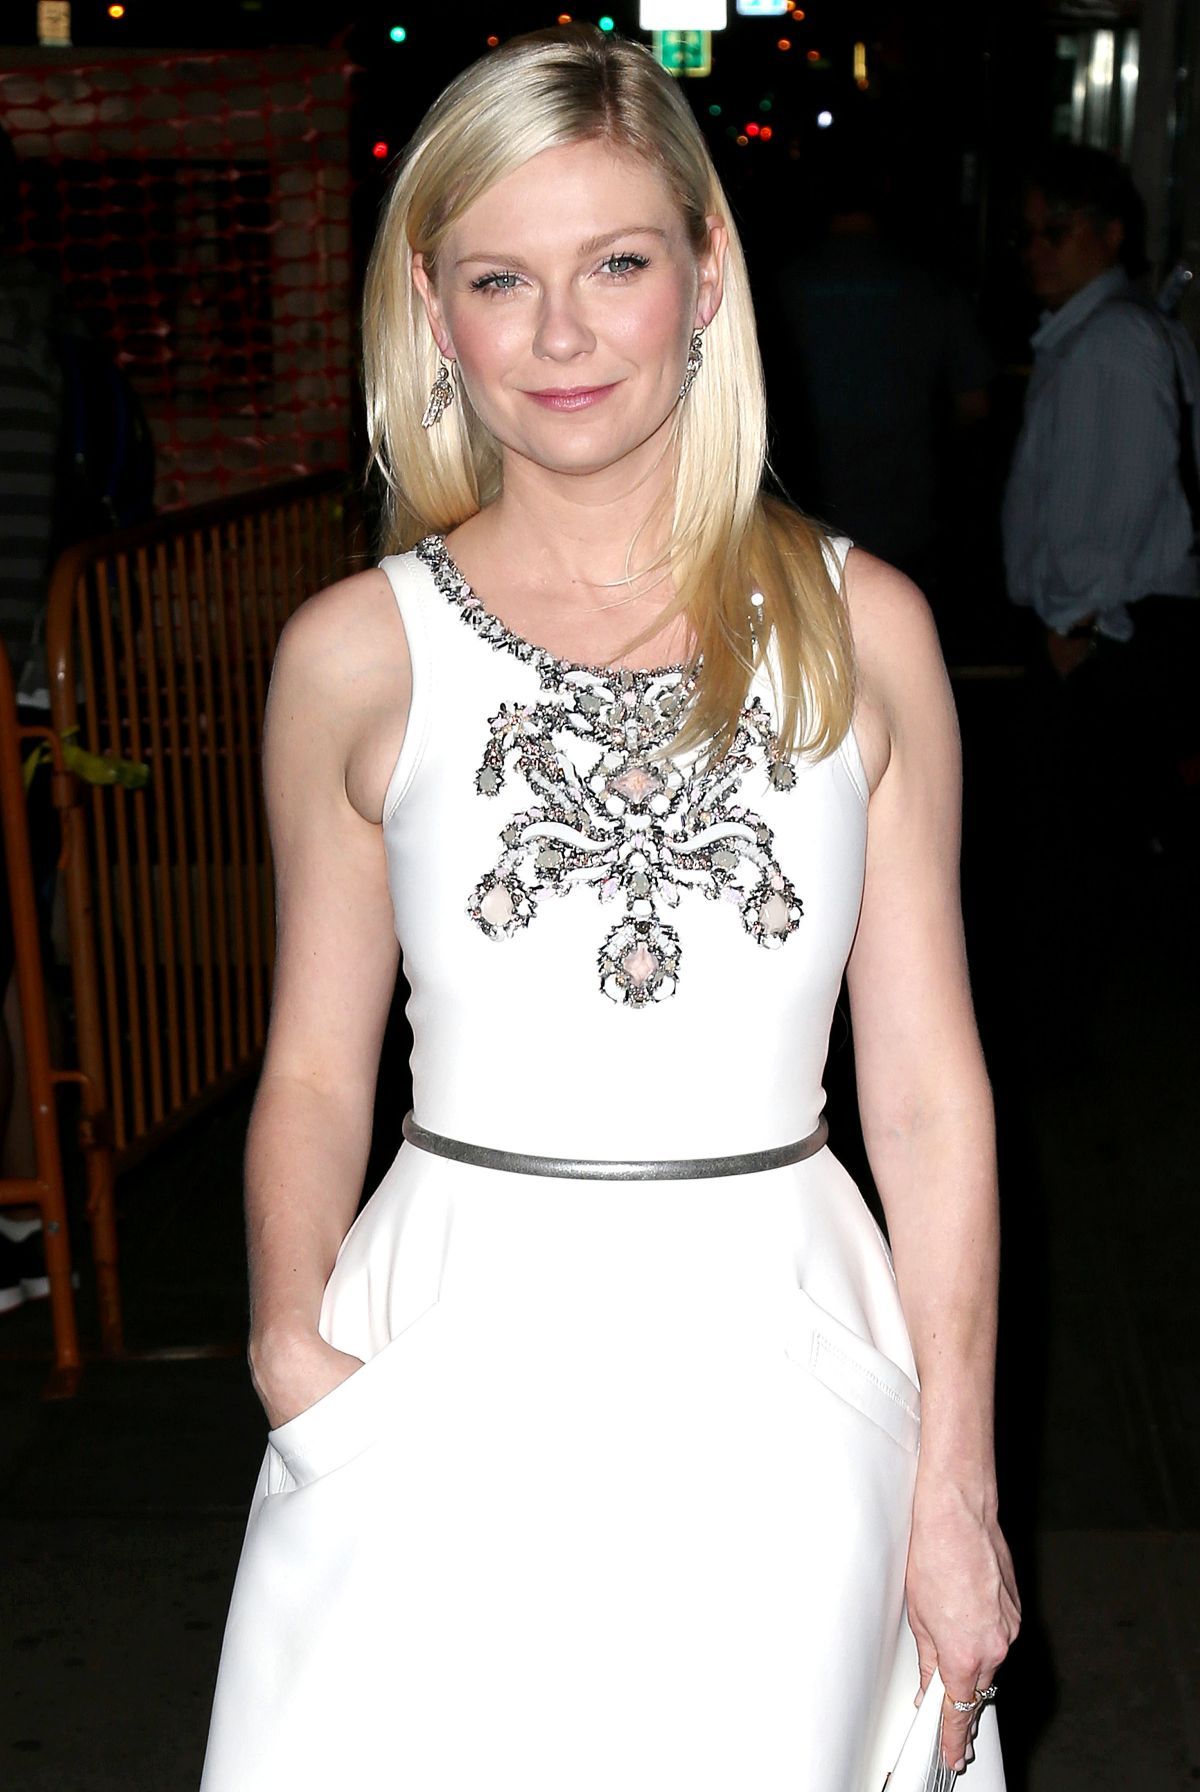 KIRSTEN DUNST at The Two Faces of January Premiere in New York